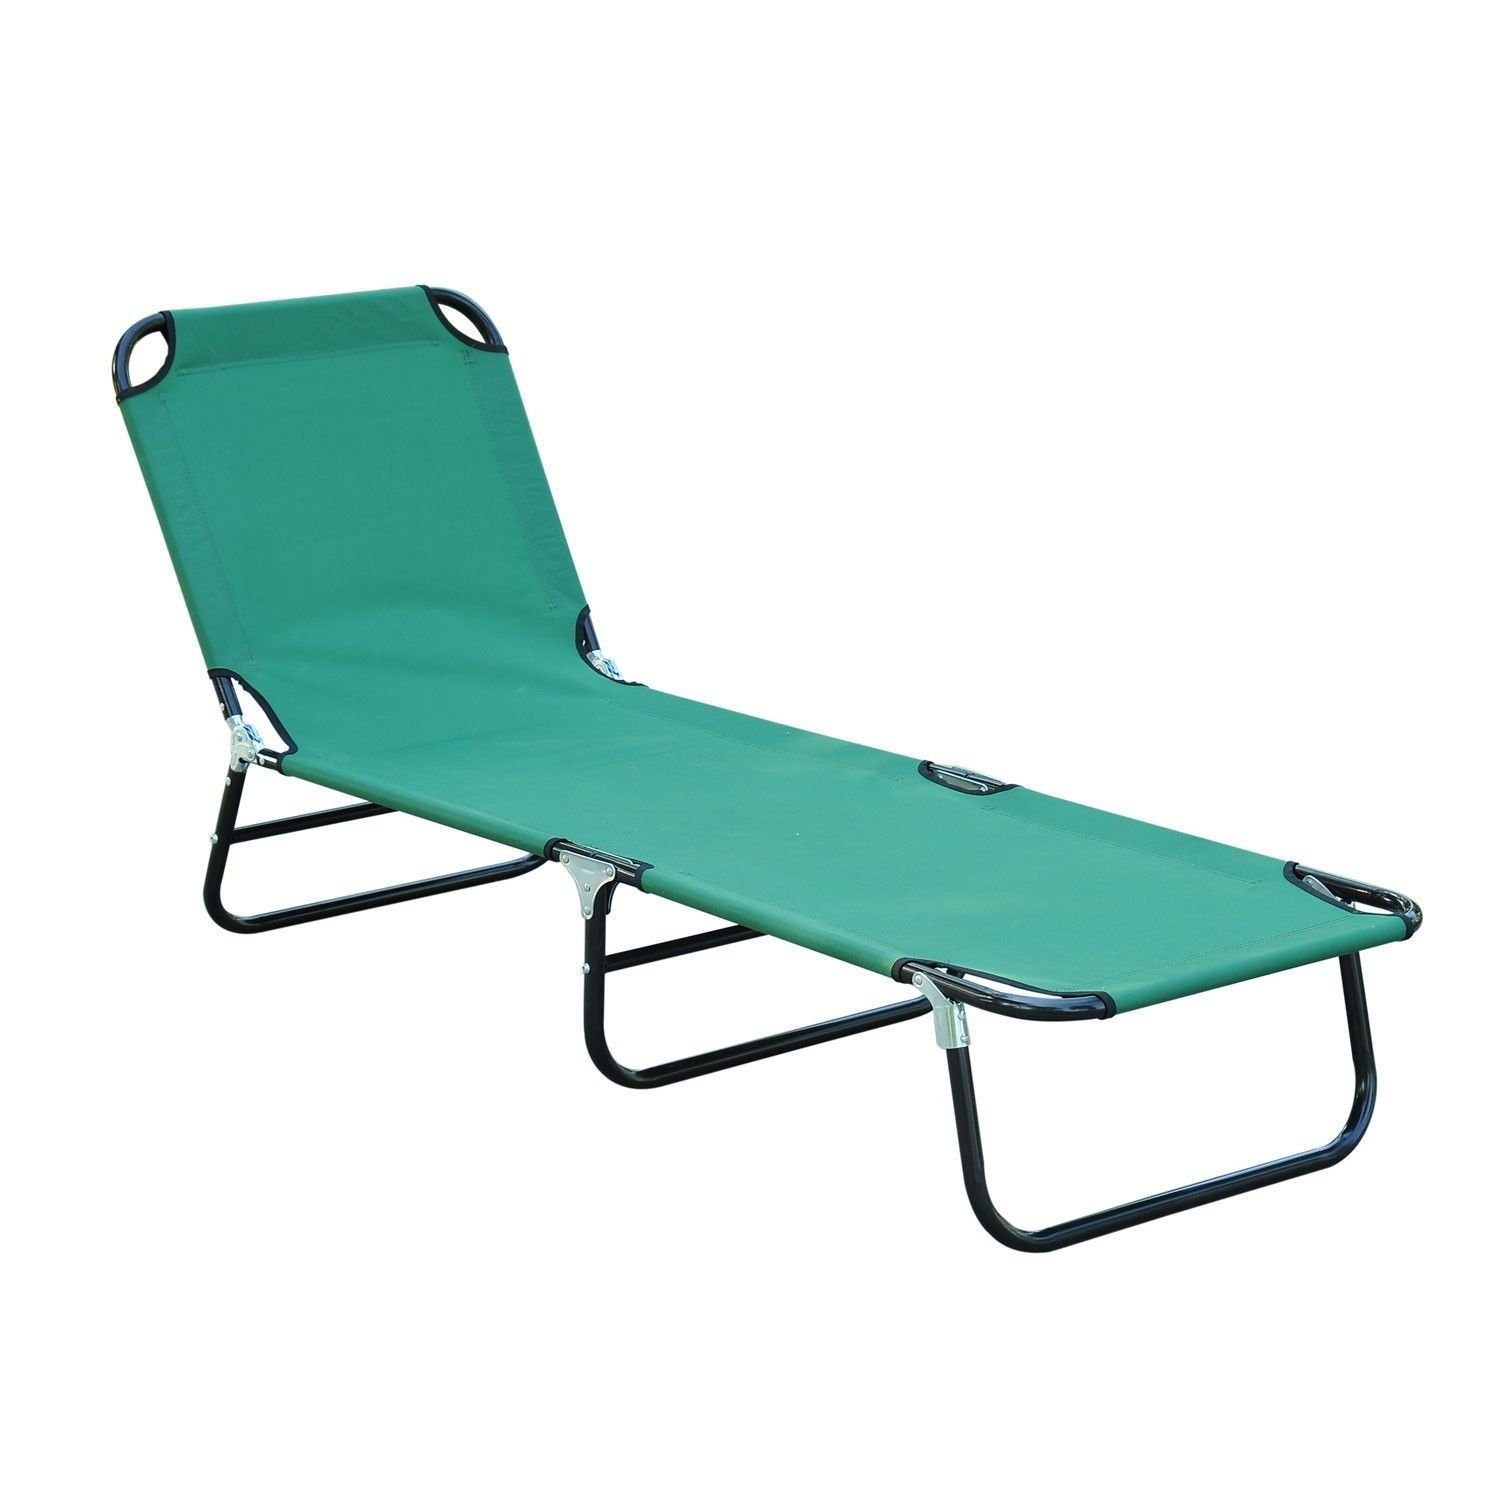 Patio Foldable Daybed Solid Outdoor Chaise Relaxer Elegant Garden Durable Frame Sun Lounger Camping Cot Classic Pool Beach Recliner Couch Sunbed Patio Furniture Green by Clever Market